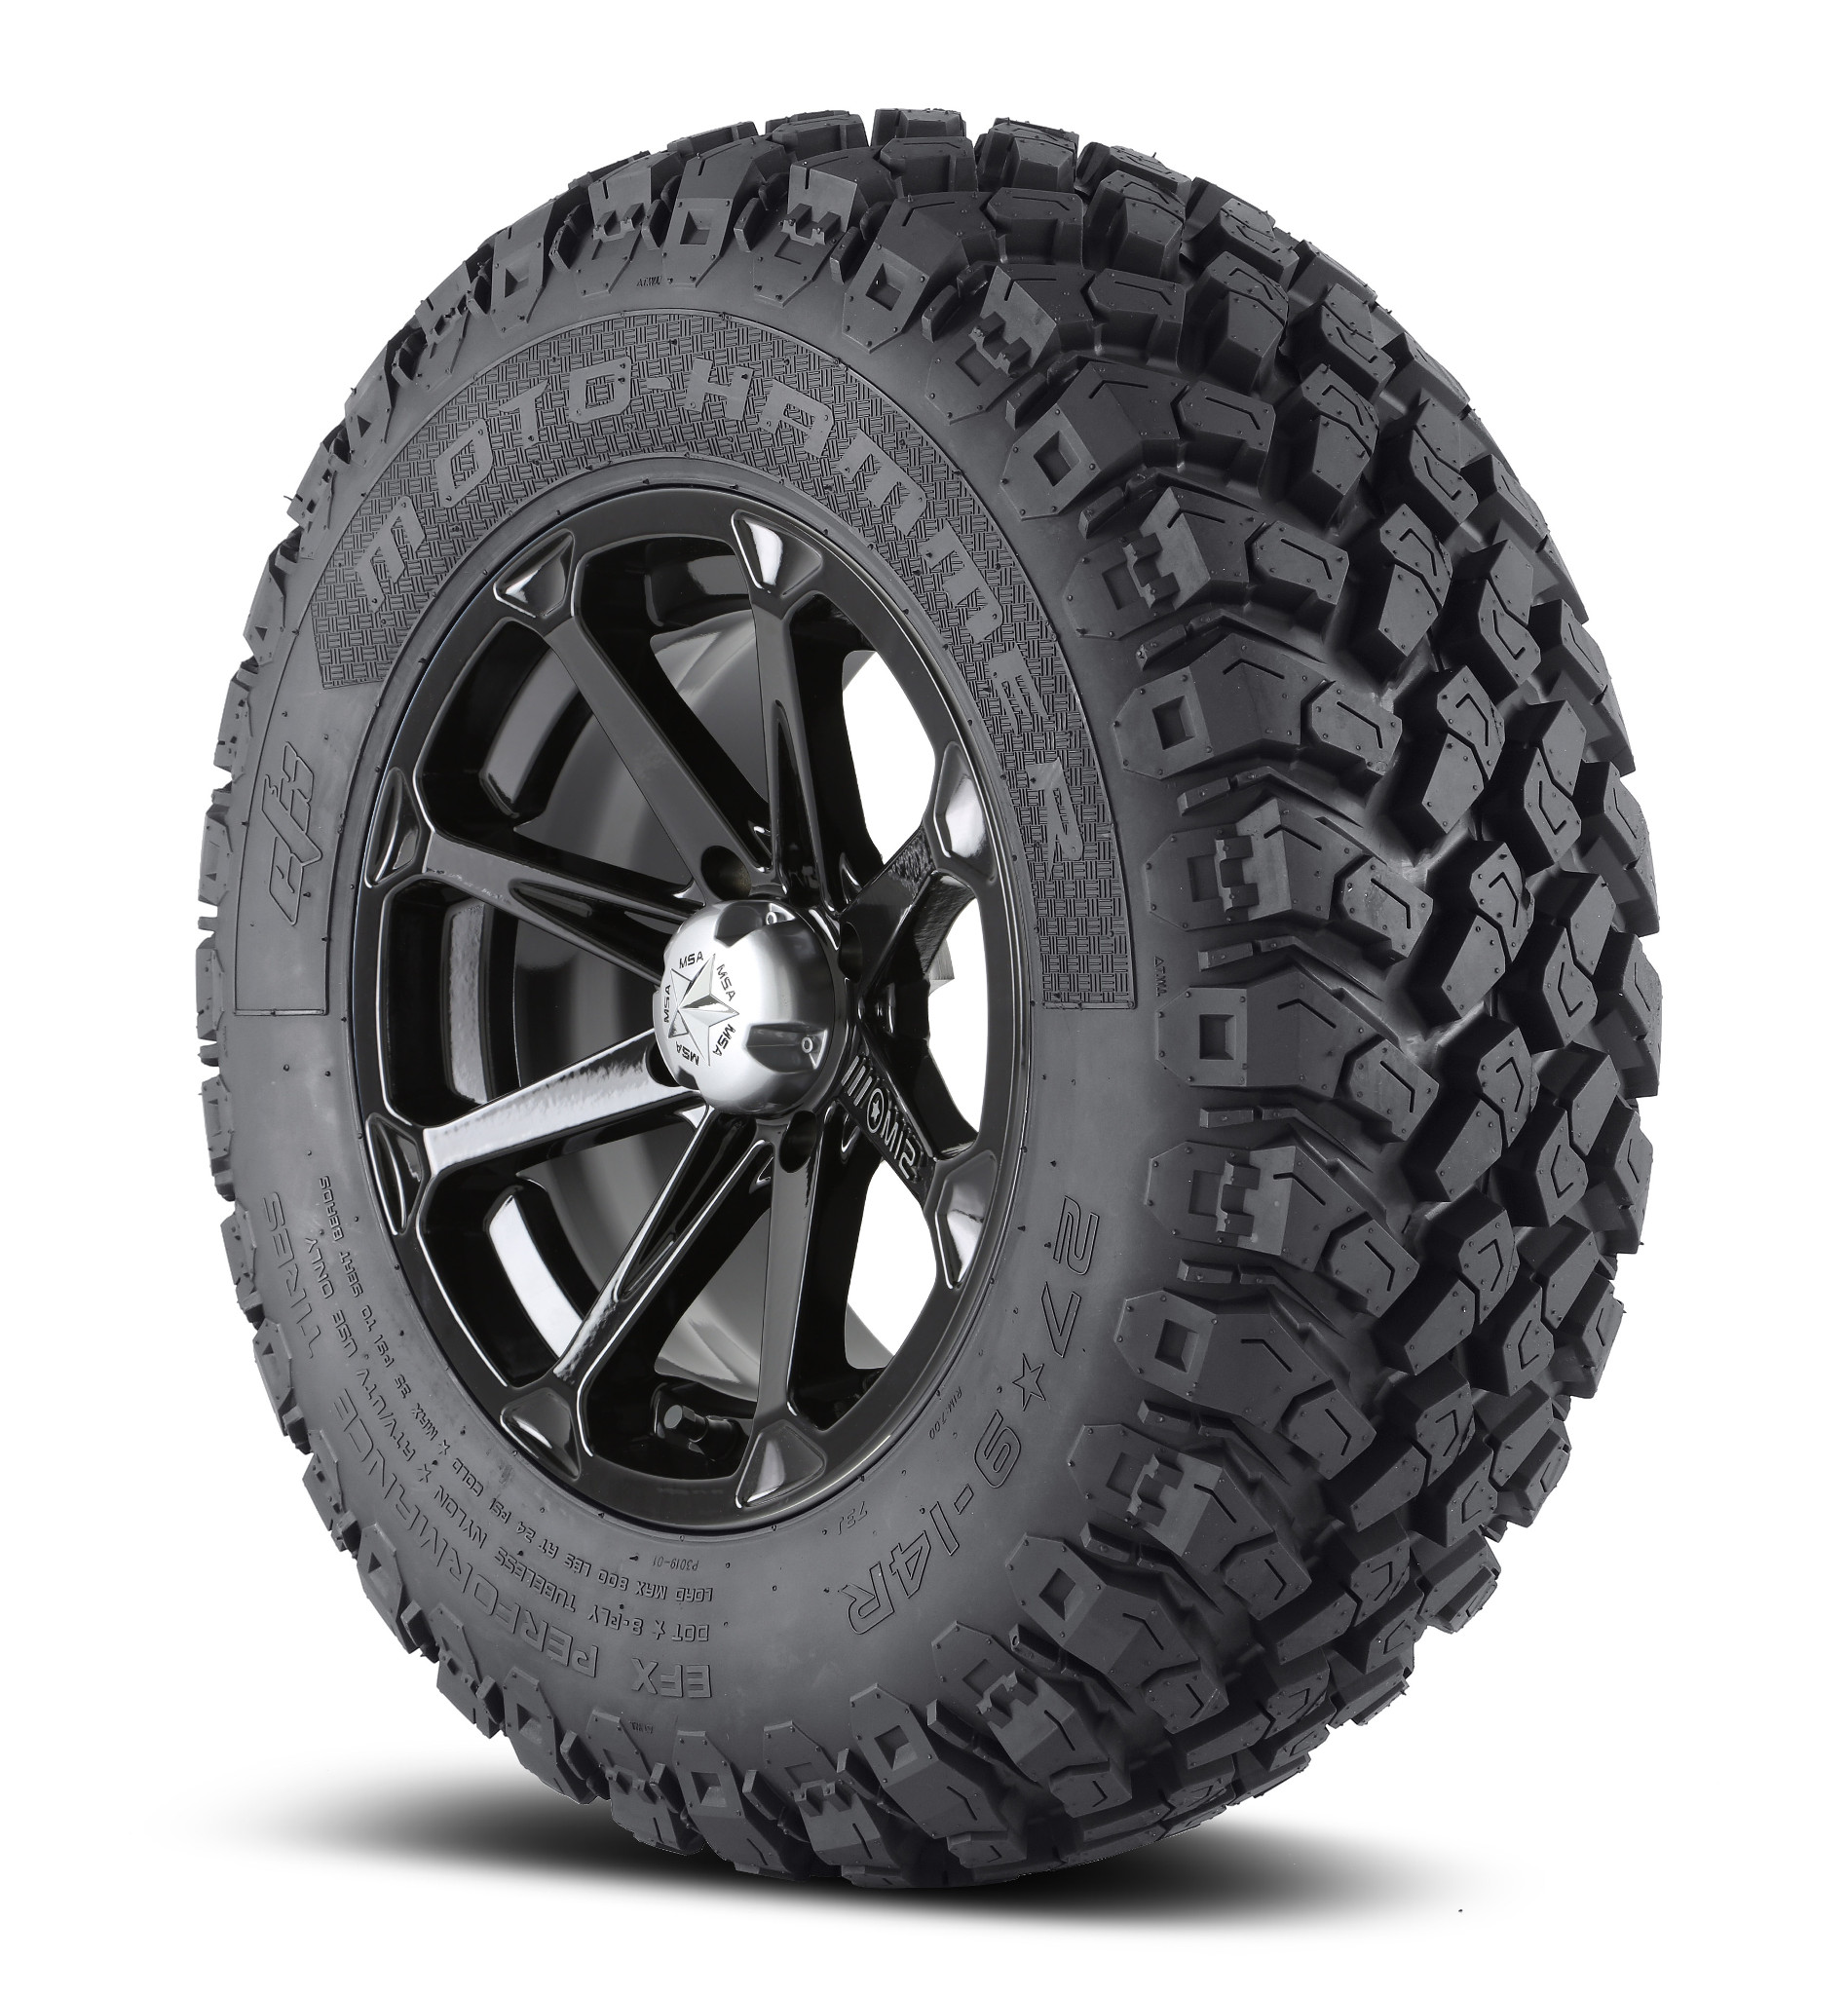 Msa 14x7 M12 Diesel Wheel And Efx 28 Quot Moto Hammer Tire